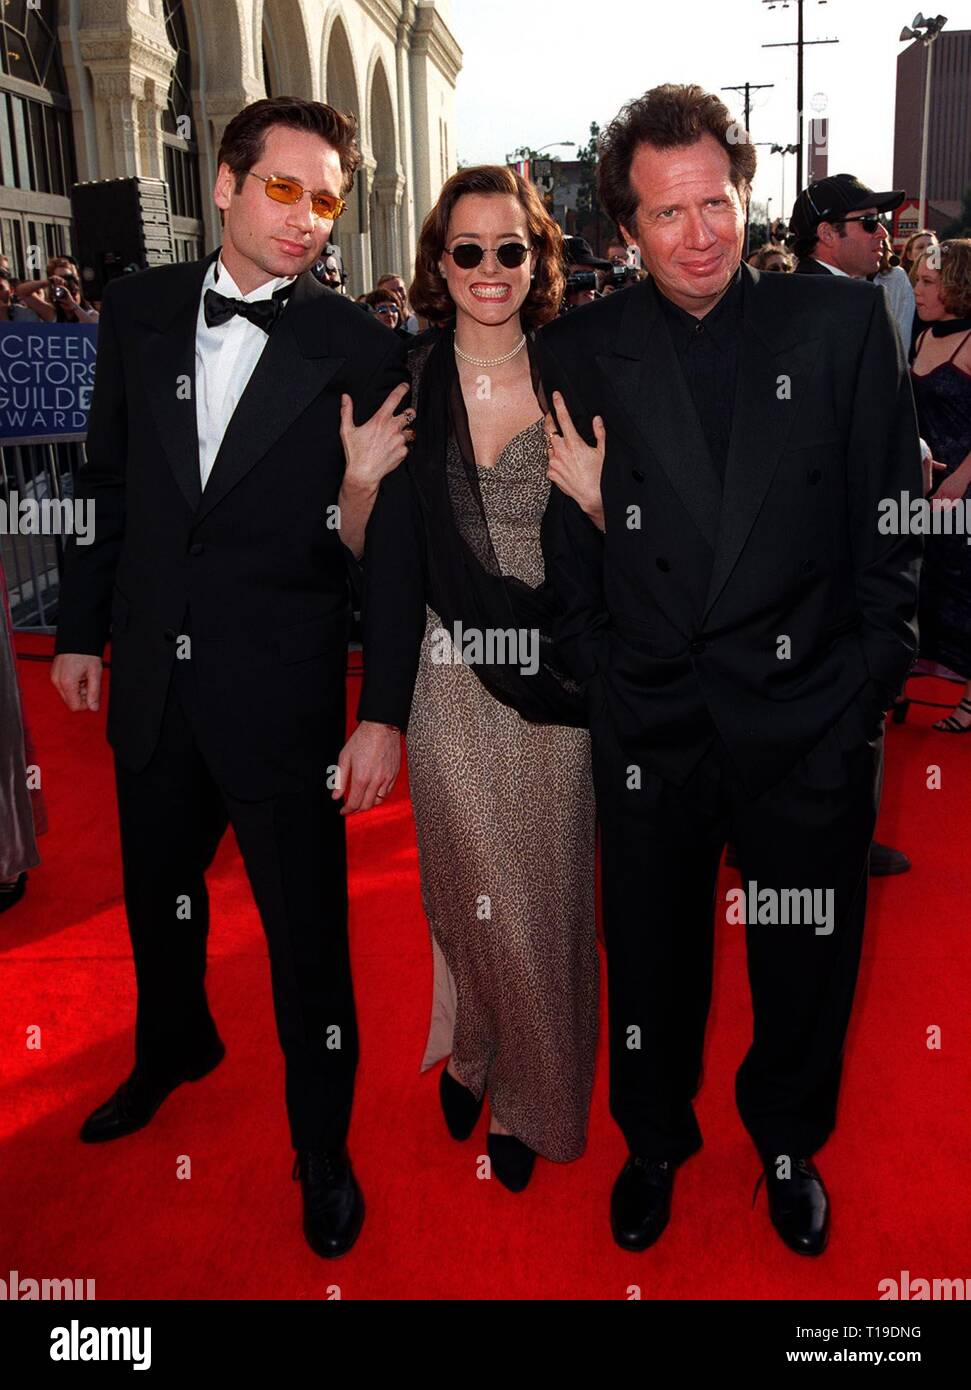 LOS ANGELES, CA - March 8, 1998: 'X-Files' star DAVID DUCHOVNY & wife TEA LEONI with actor GARRY SHANDLING (right) at the Screen Actors Guild Awards in Los Angeles. - Stock Image